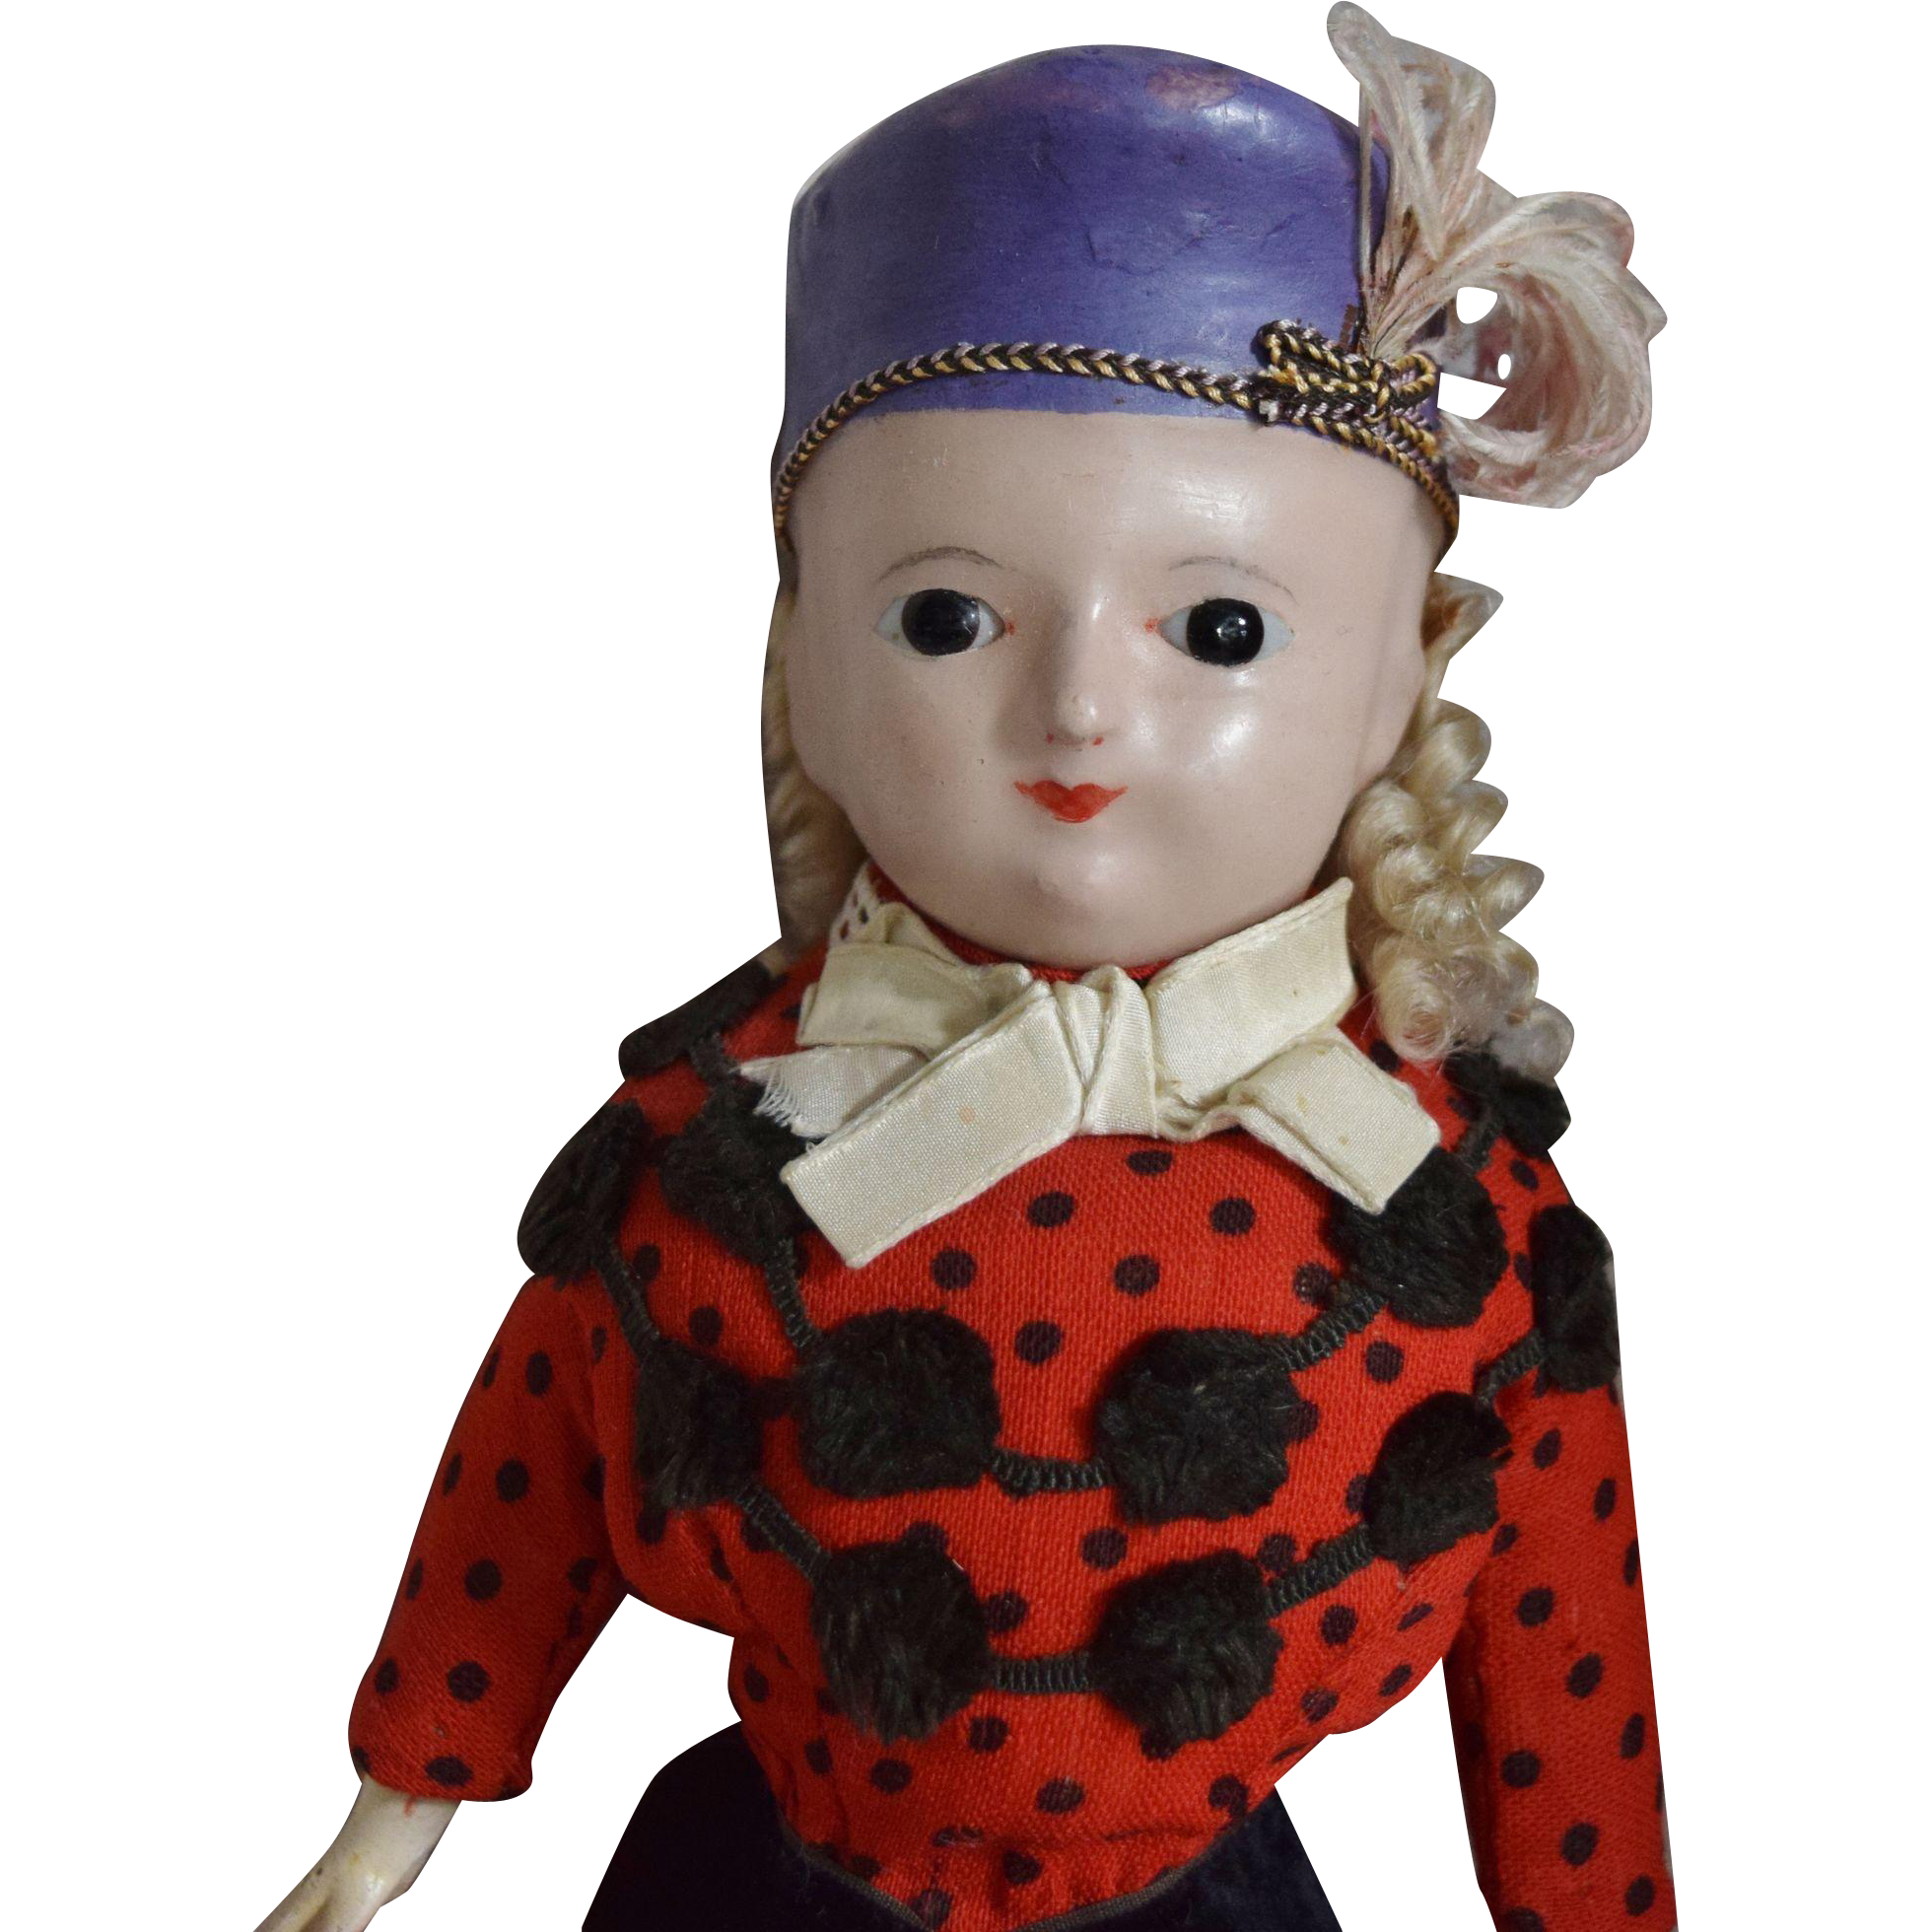 All Original German Wax Over Papier Mache Molded Hat Doll